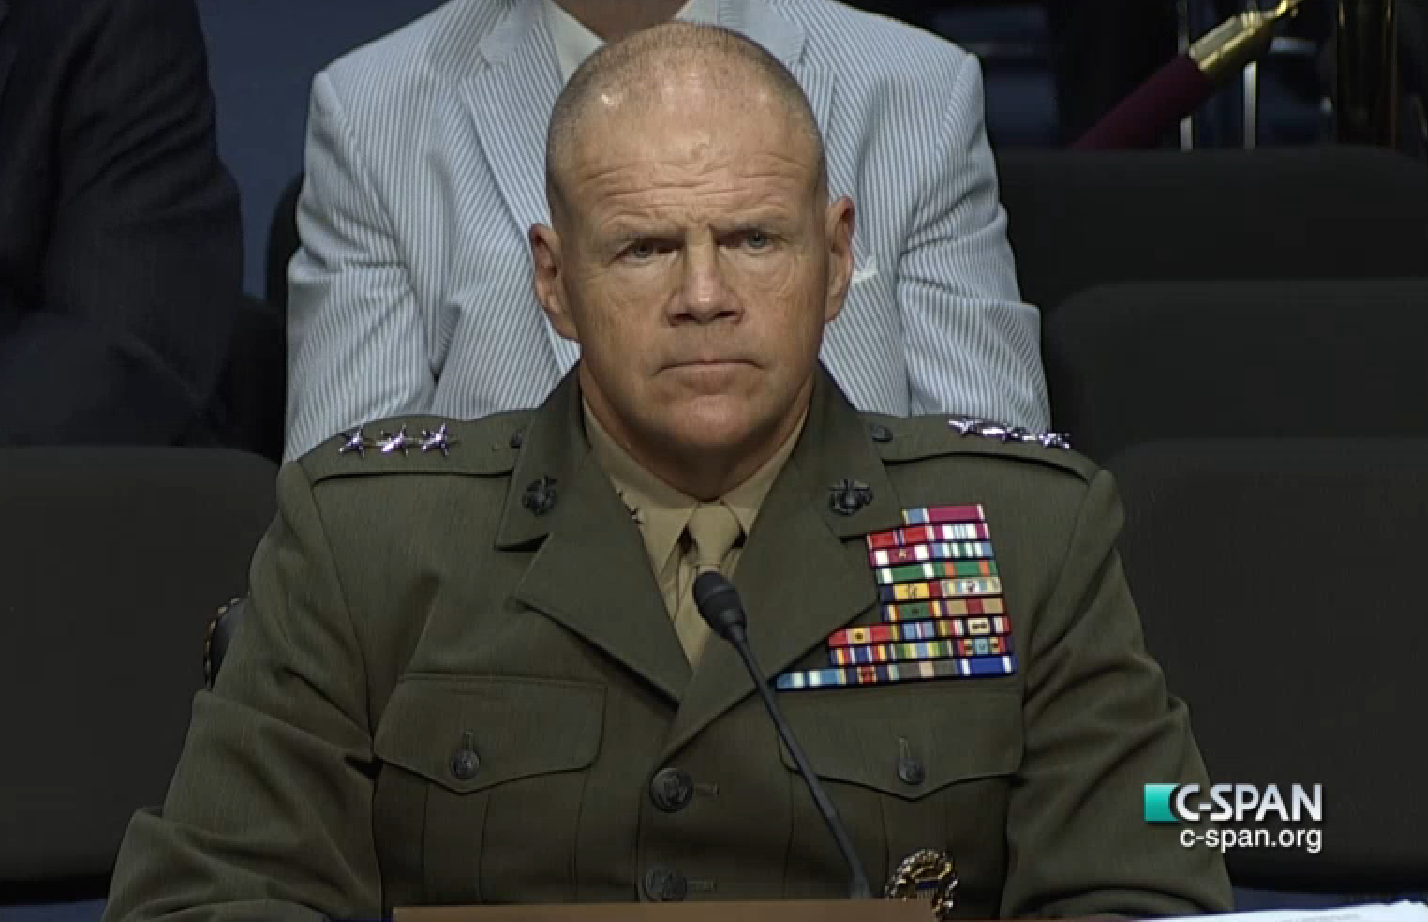 Lt. Gen. Robert Neller during his July 23, 2015 confirmation hearing. C-SPAN Image.